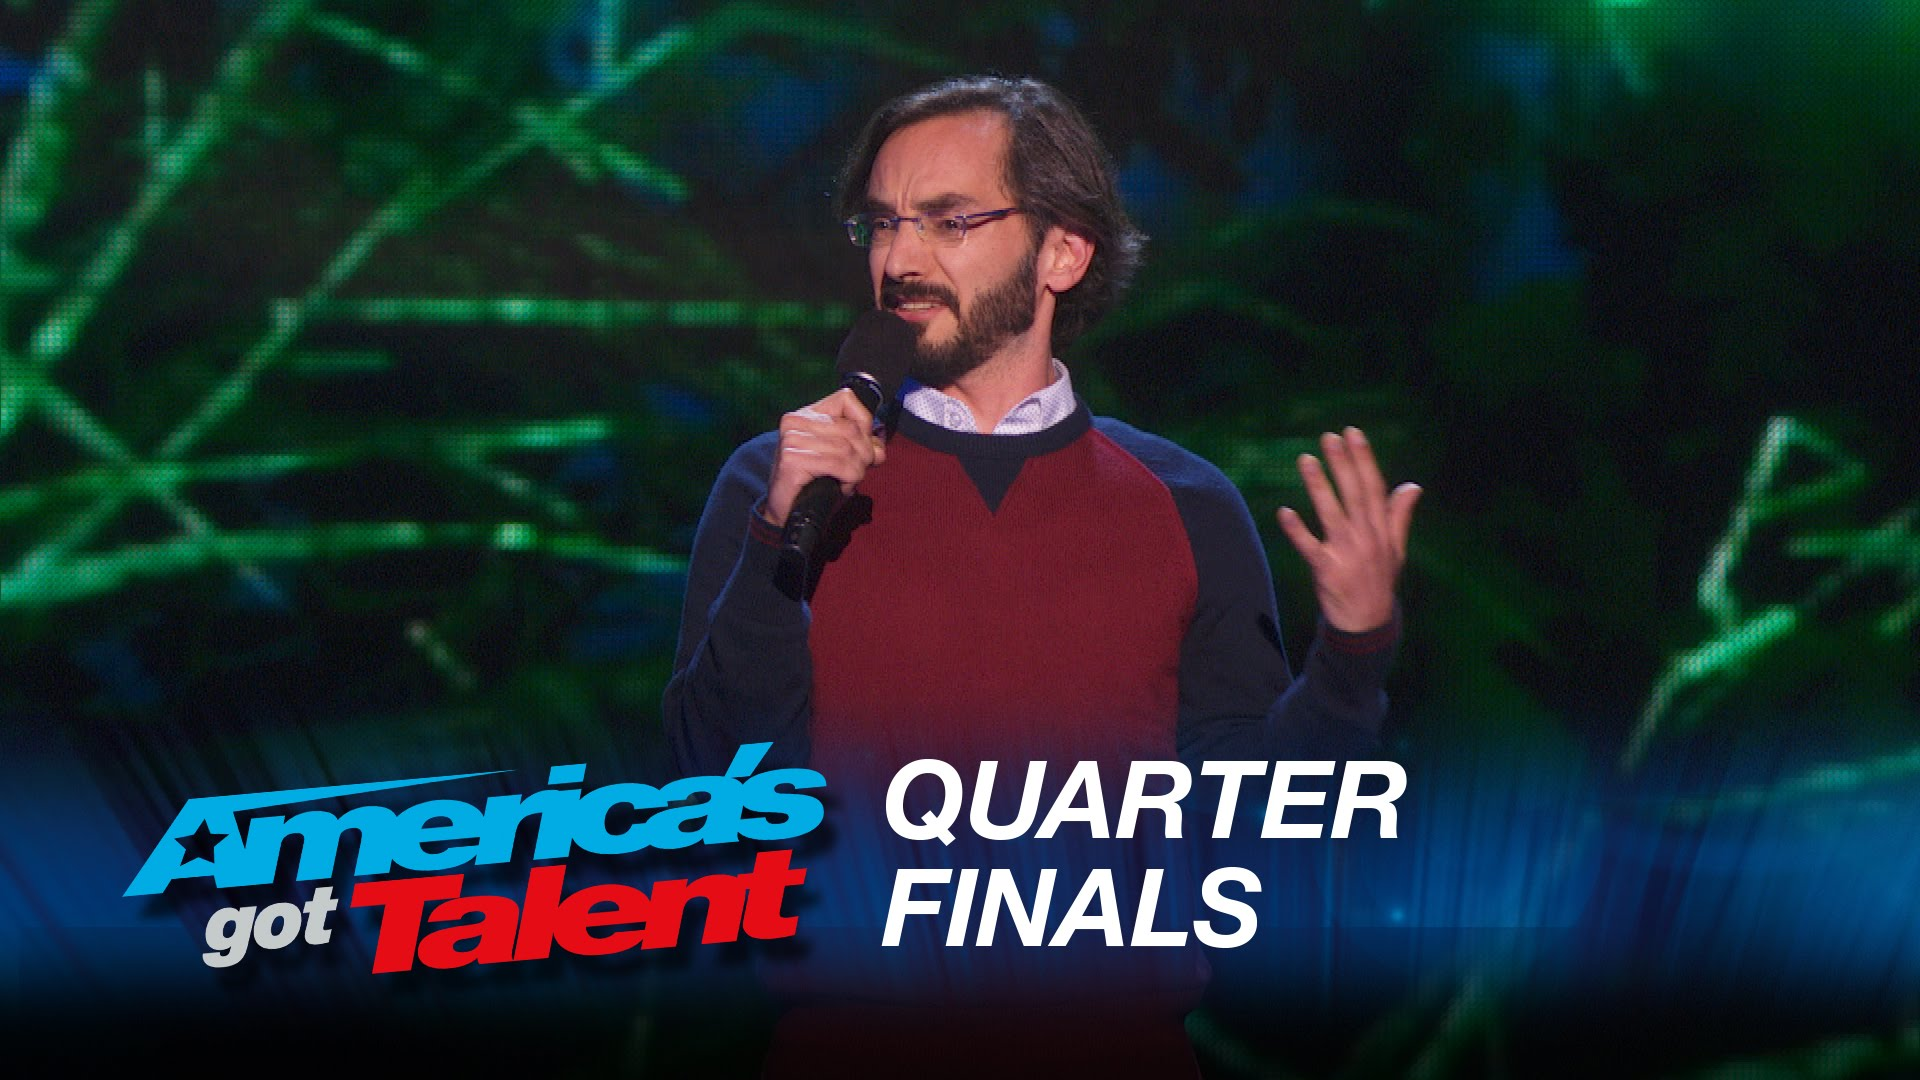 Myq Kaplan's live quarterfinal round of America's Got Talent at Radio City Music Hall